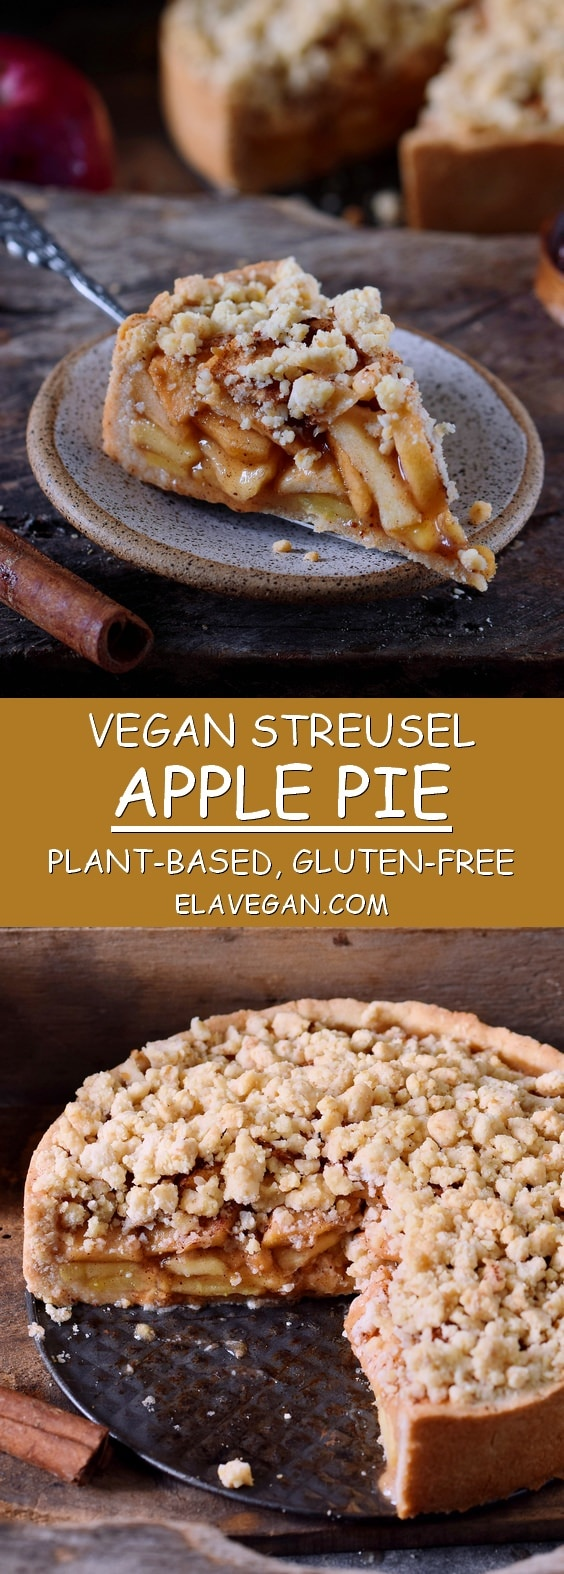 vegan apple pie with streusel gluten-free recipe pinterest collage